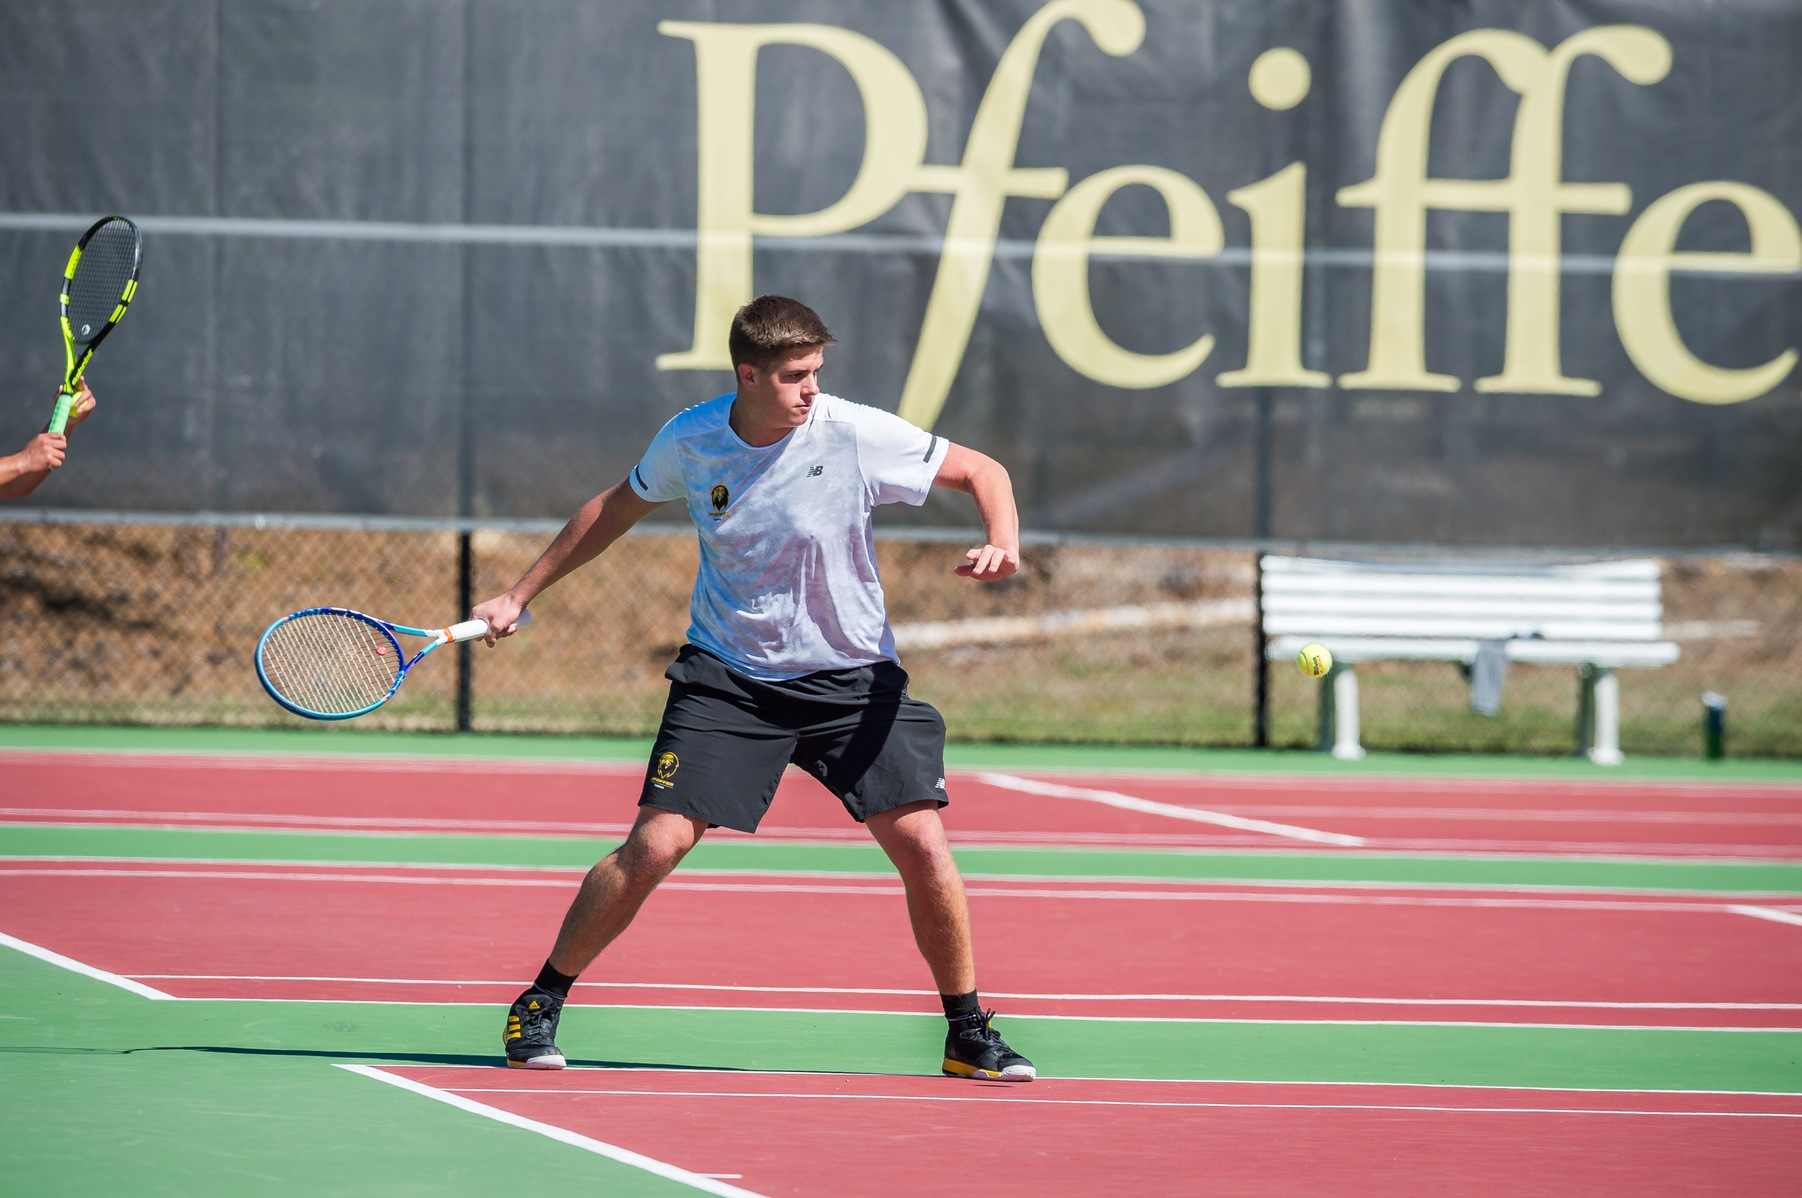 Men's Tennis Improves To 12-2 With 7-2 Victory Over Greensboro